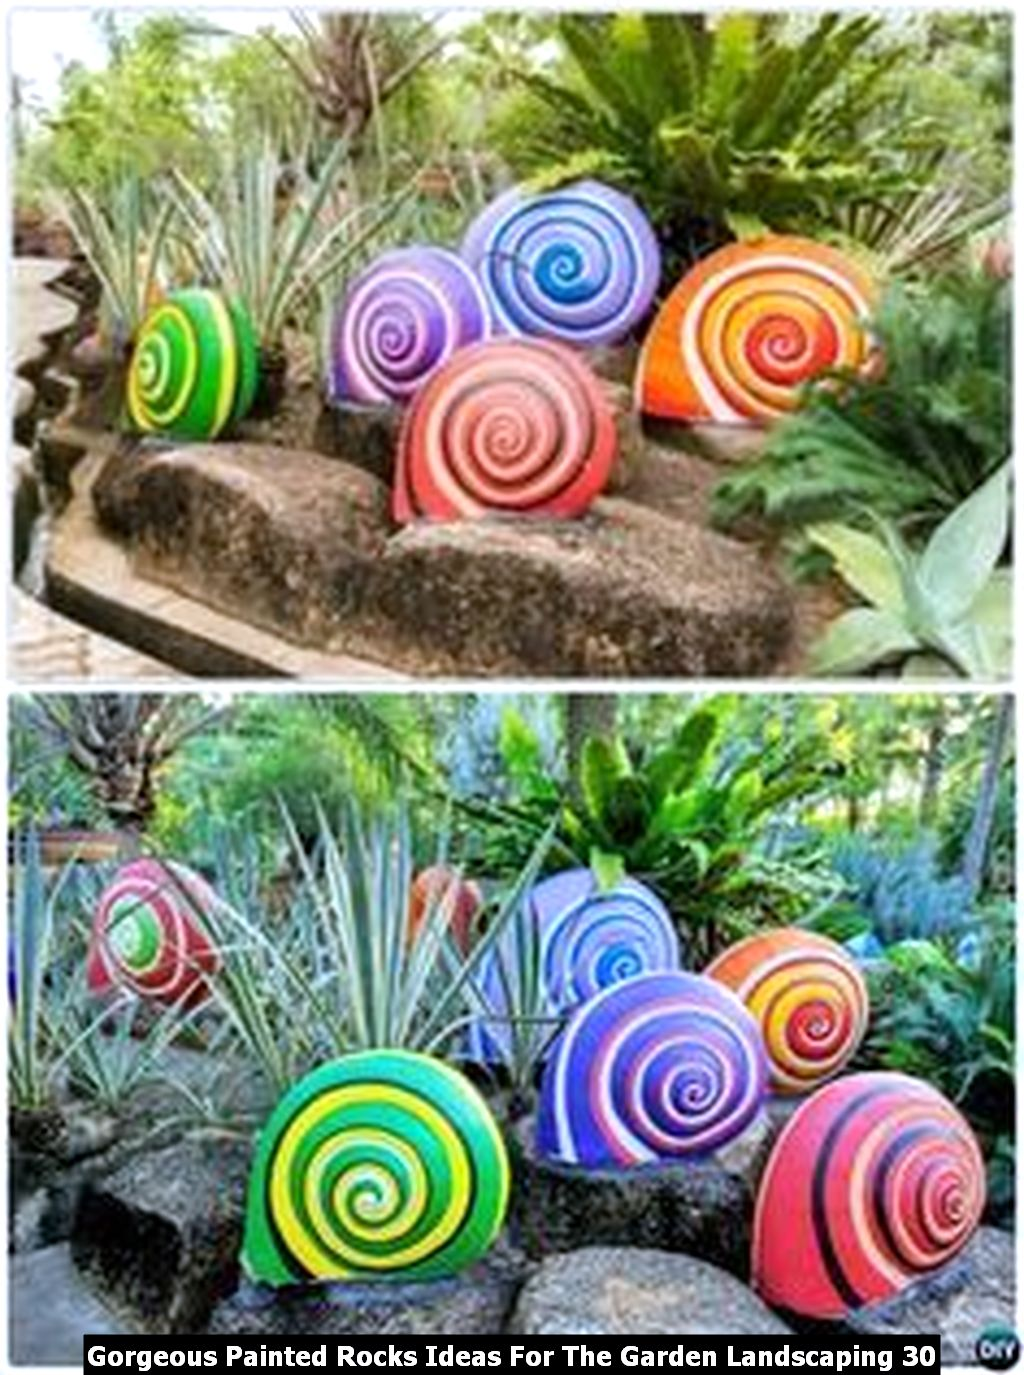 Gorgeous Painted Rocks Ideas For The Garden Landscaping 30